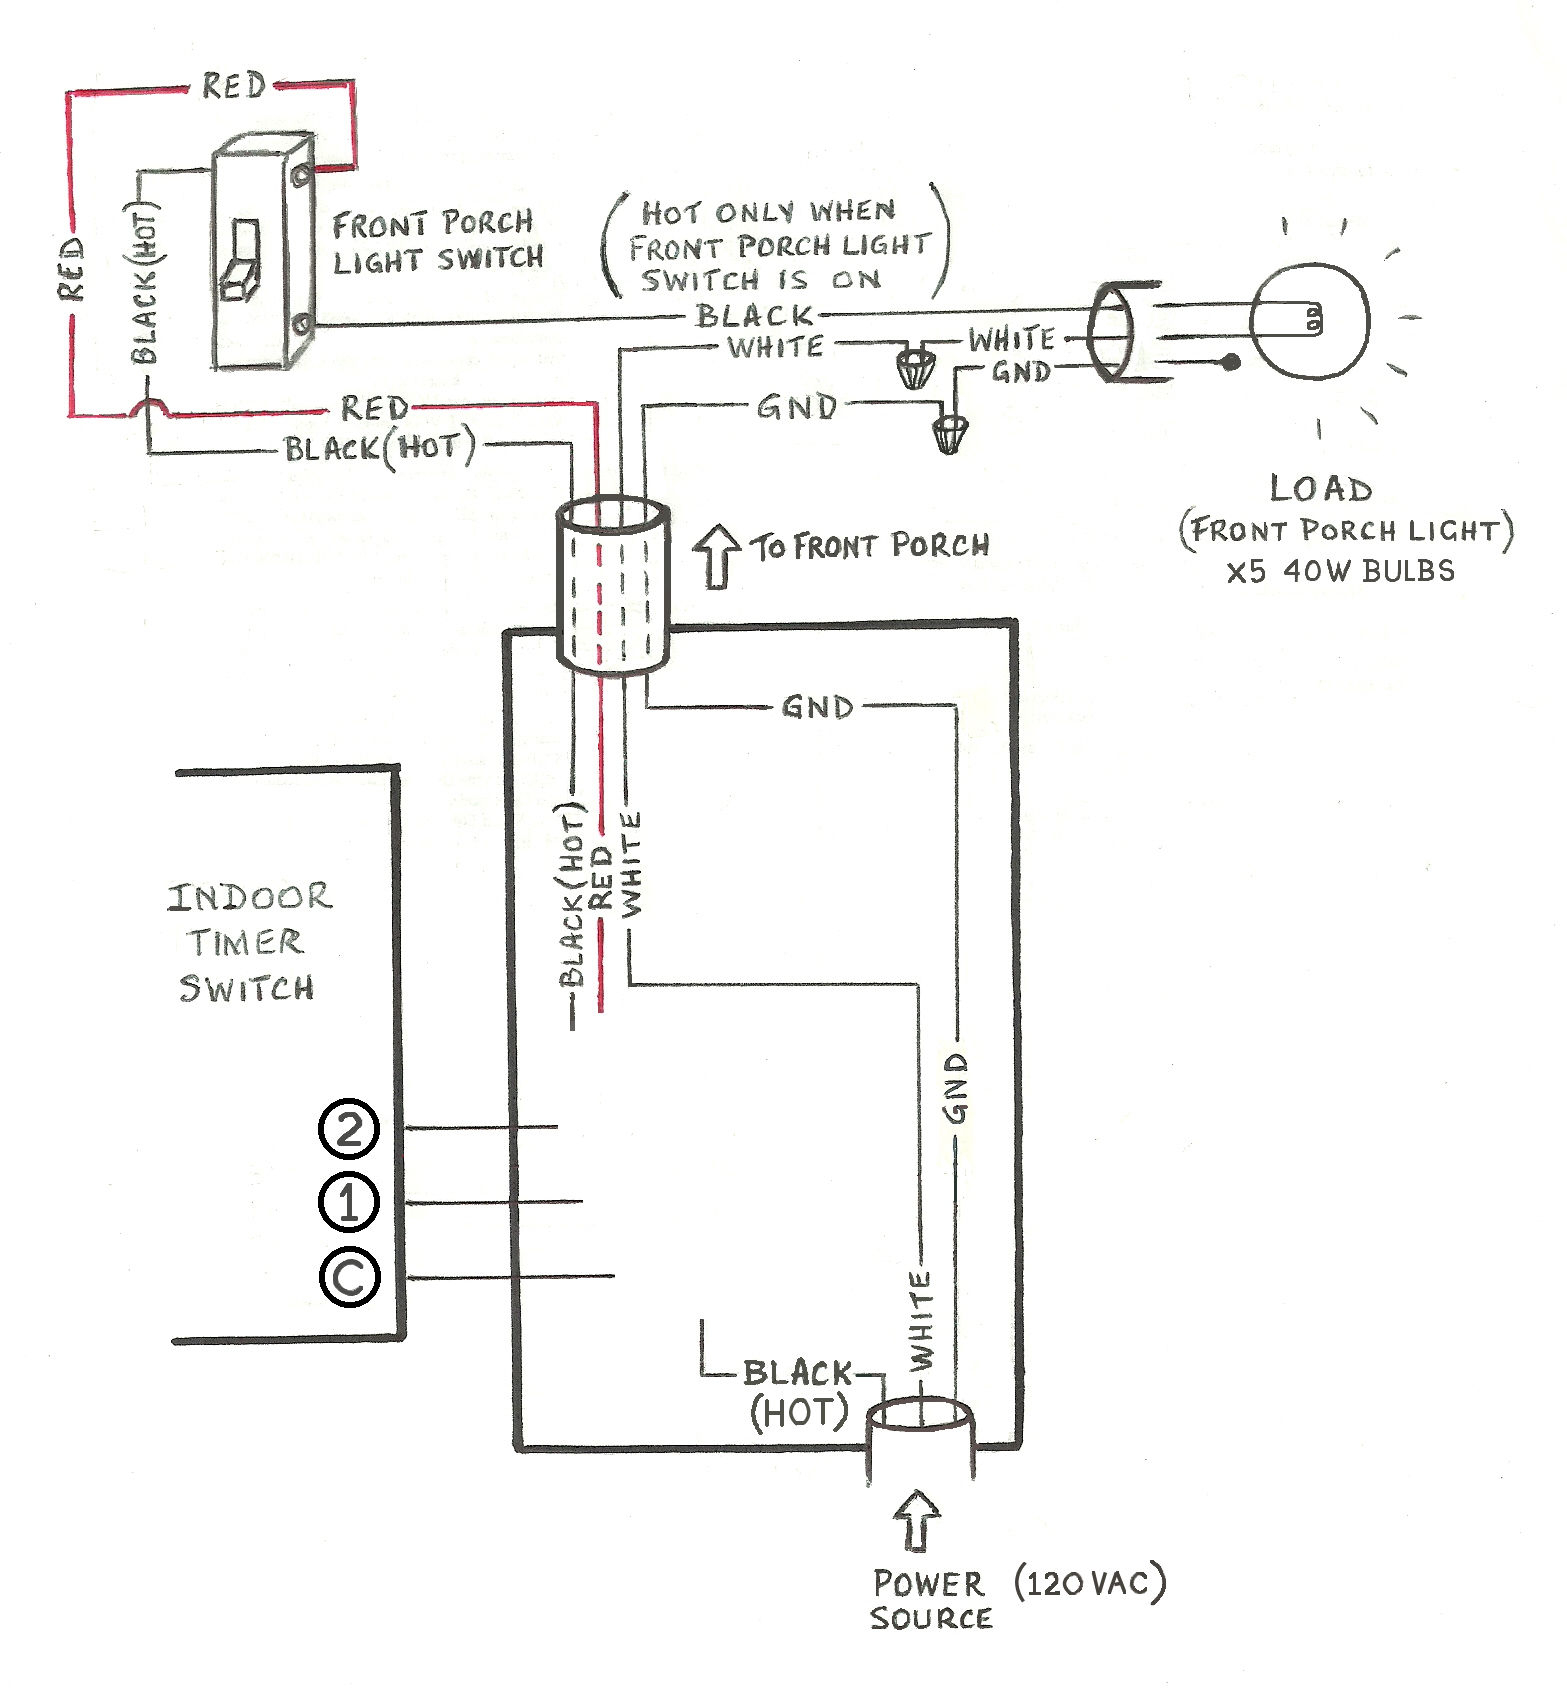 Need Help Wiring A 3-Way Honeywell Digital Timer Switch - Home - Wiring Diagram Light Switch